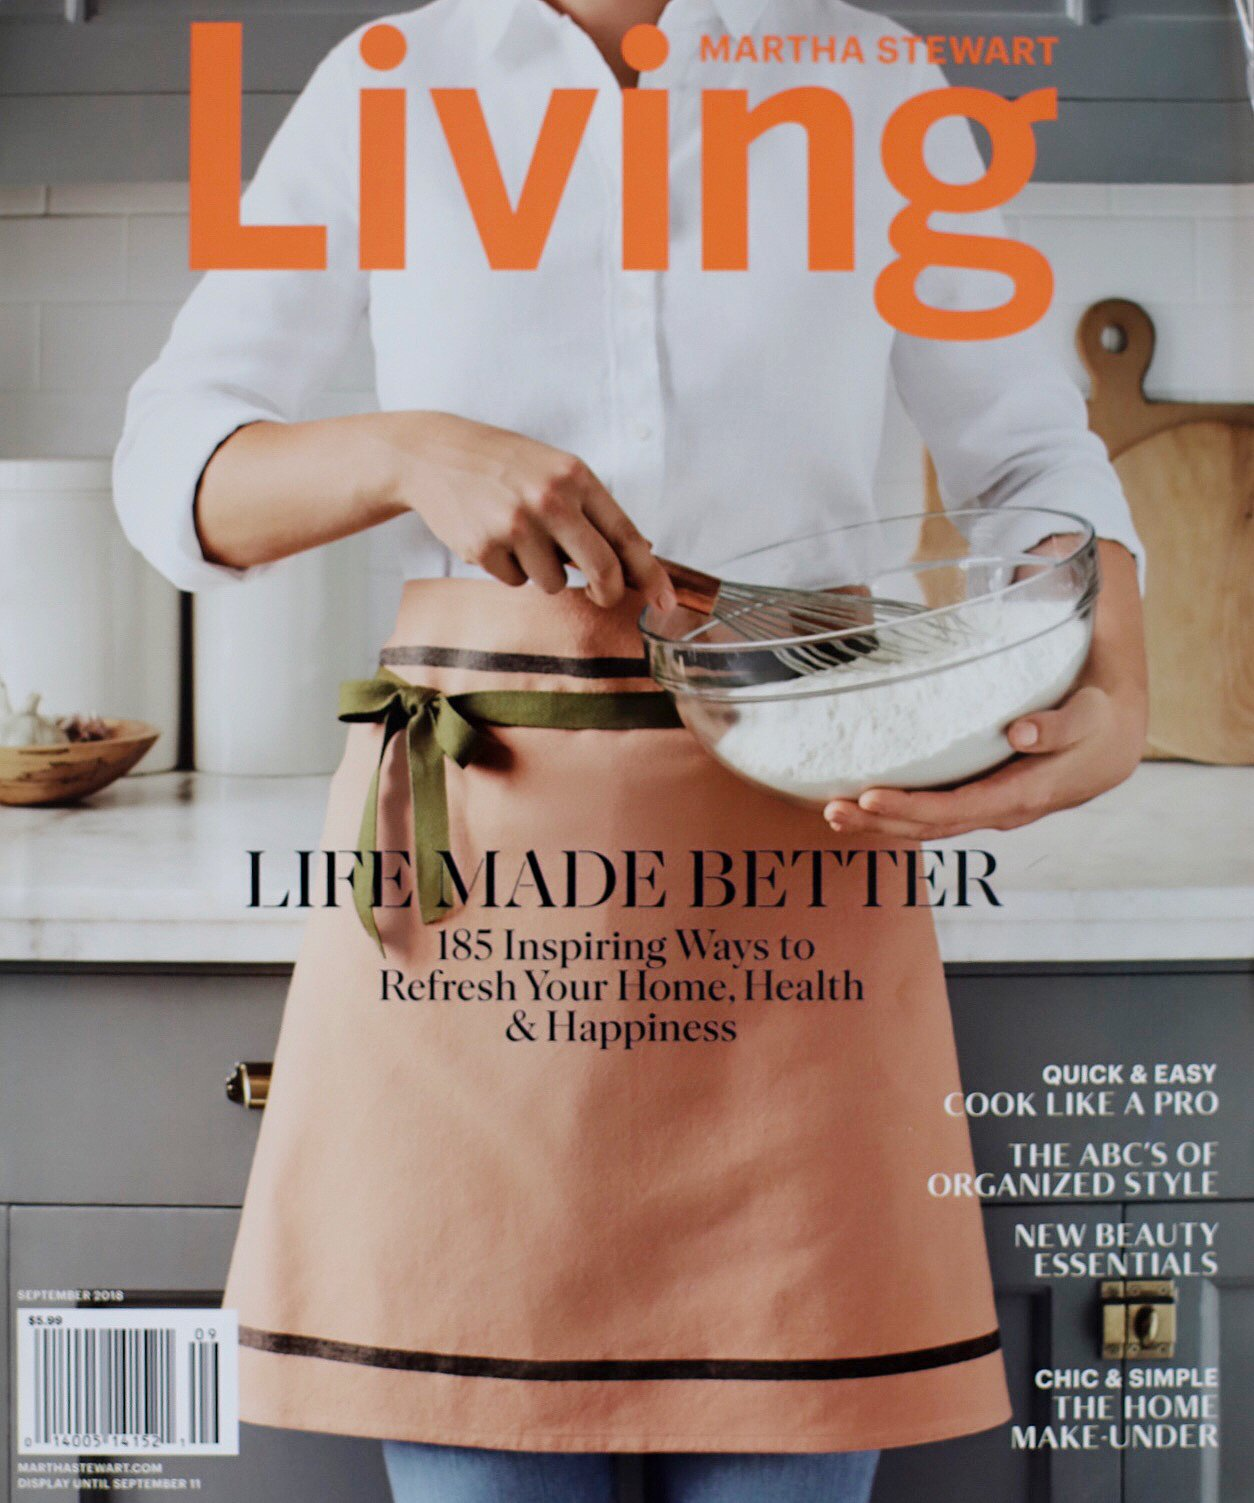 Martha Stewart Living Cover | Hygge & West Home Press